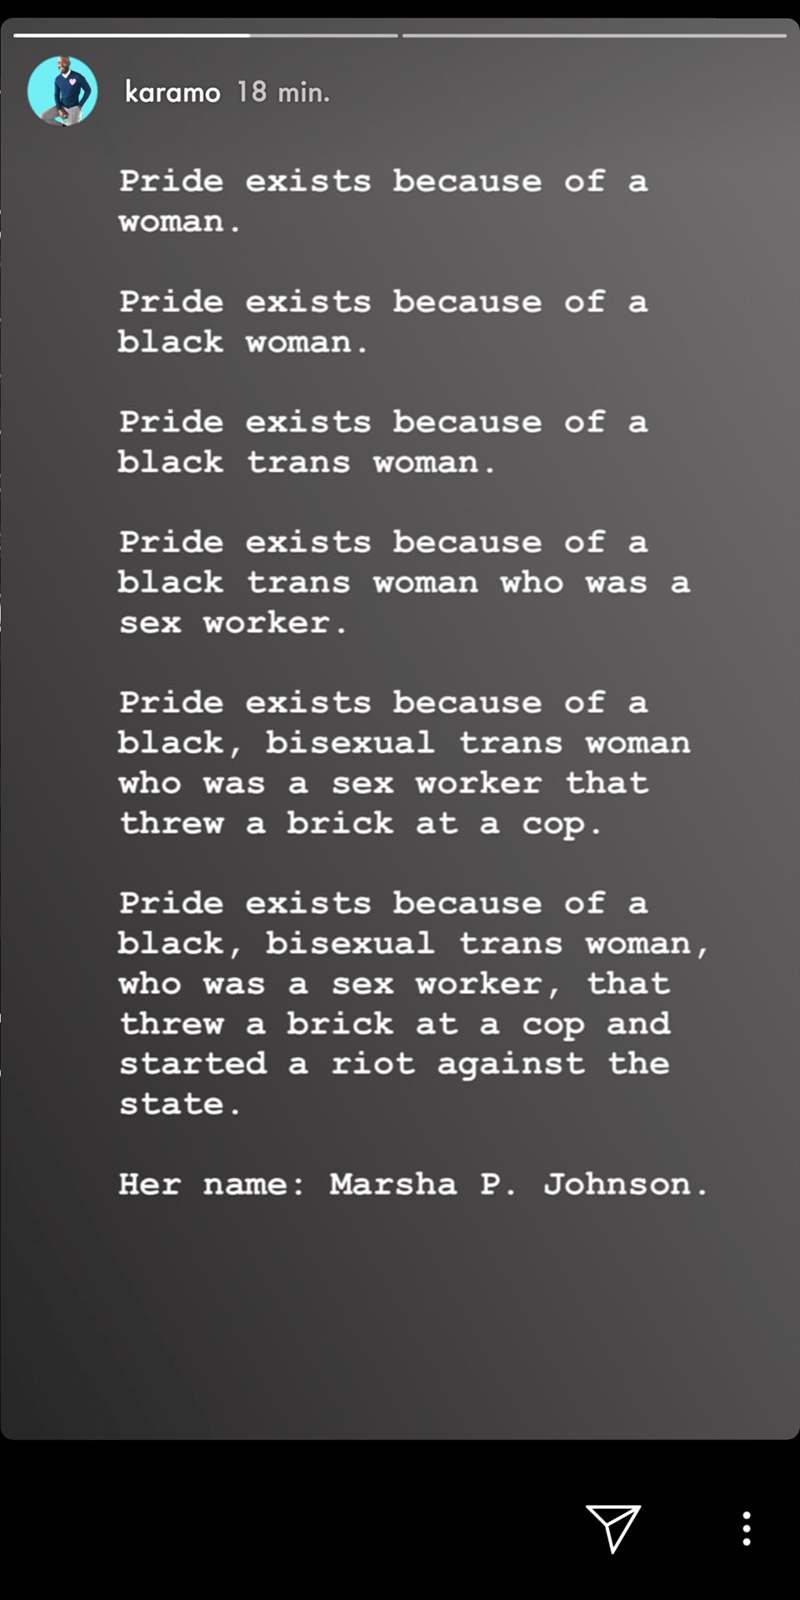 Meme - Text - karamo 18 min. Pride exists because of a woman. Pride exists because of a black woman. Pride exists because of a black trans woman. Pride exists because of a black trans woman who was a sex worker. Pride exis ts because of a black, bisexual trans woman who was a sex worker that threw a brick at a cop. Pride exists because of a black, bisexual trans woman, who was a sex worker, that threw a brick at a cop and started a riot against the state. Her name: Marsha P. John son. V